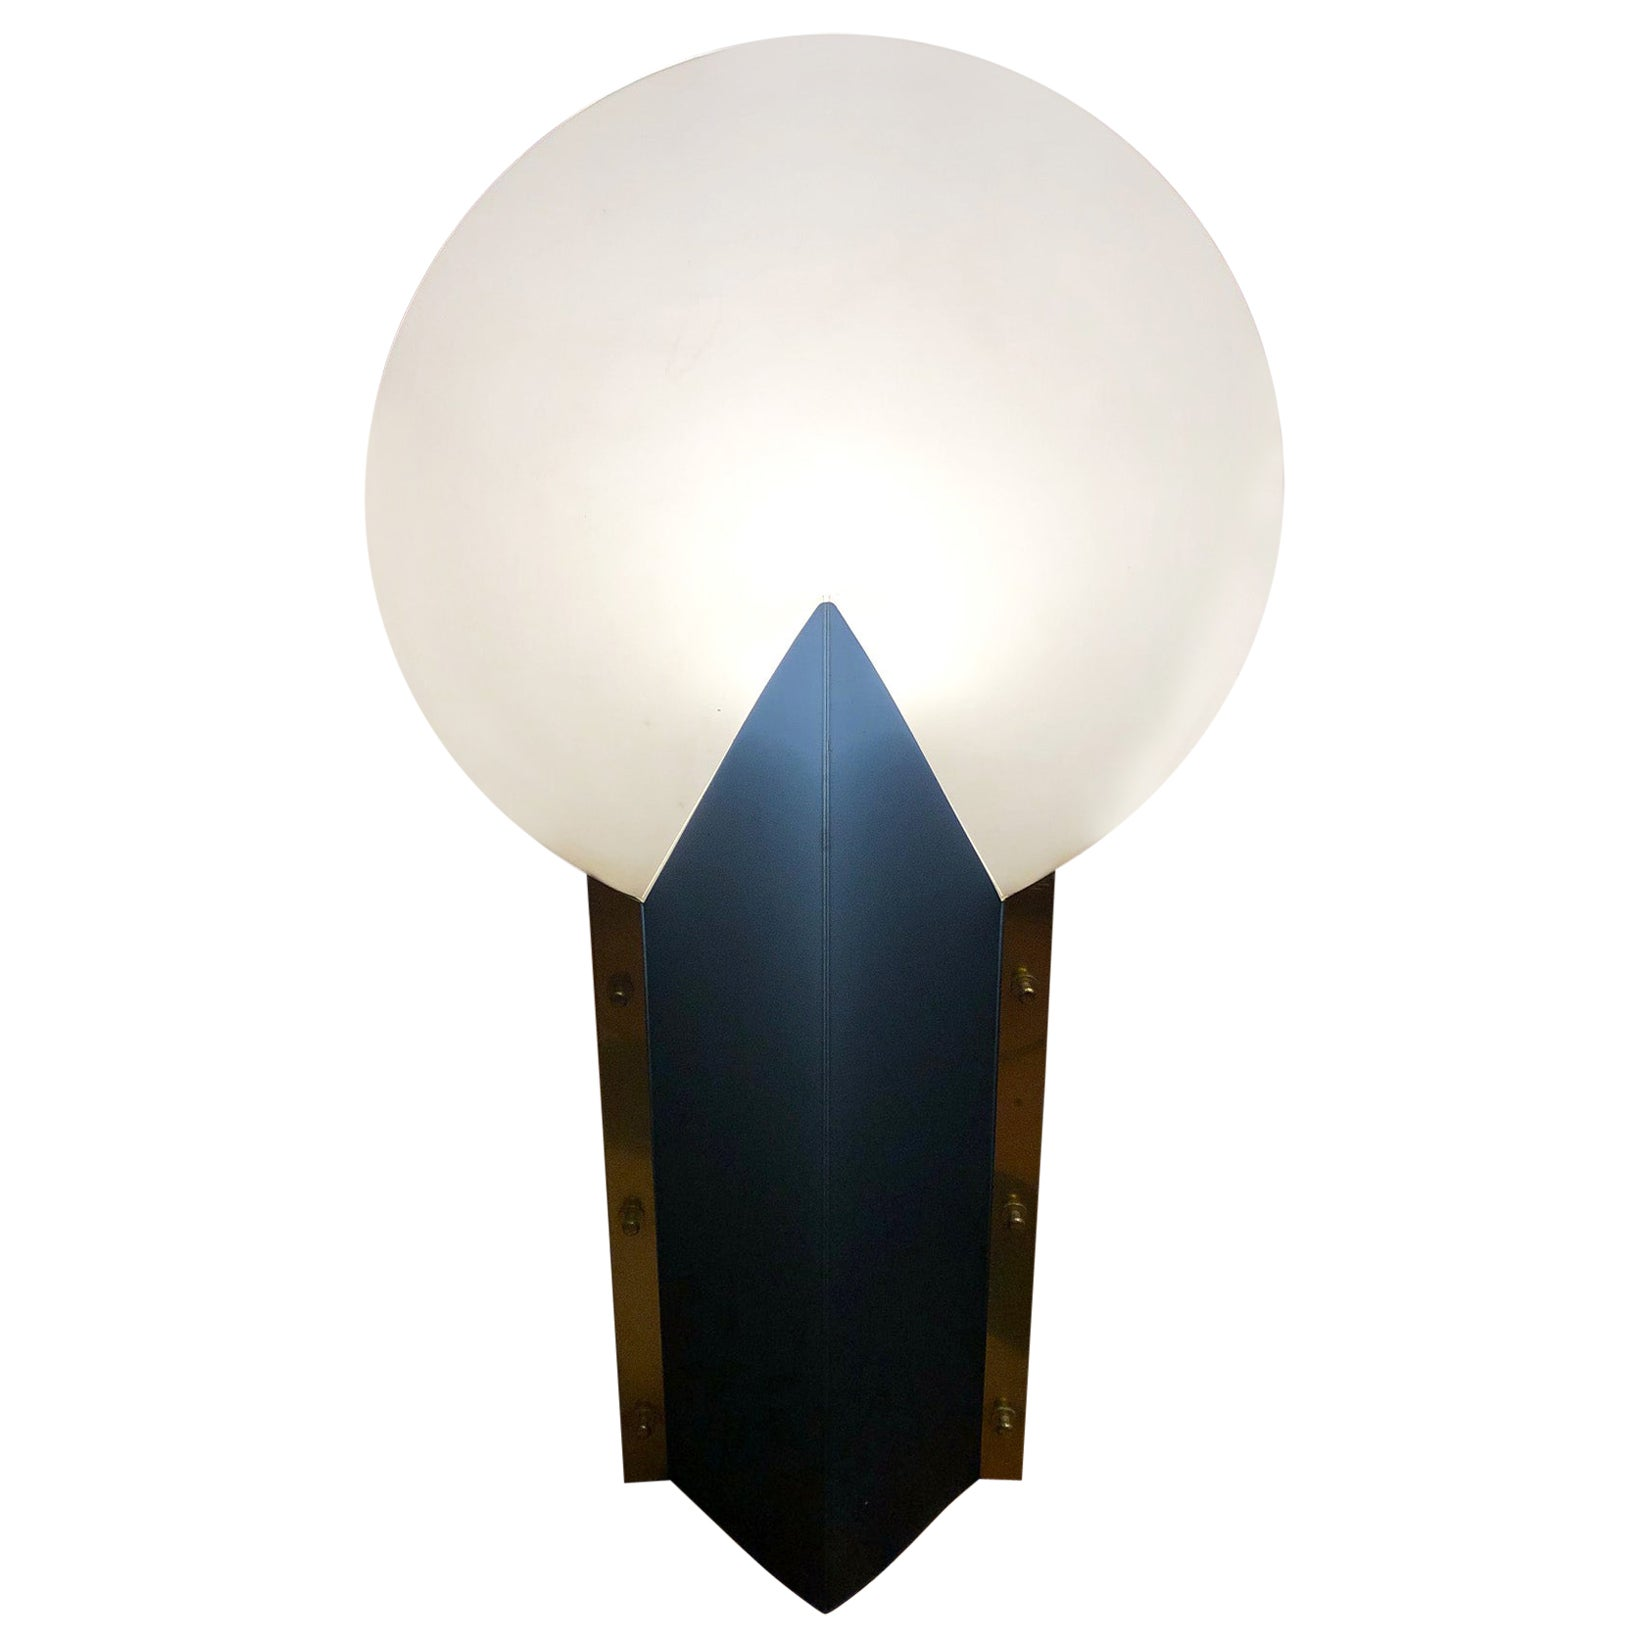 1980s Samuel Parker Table Lamp Reflex, Made in Italy